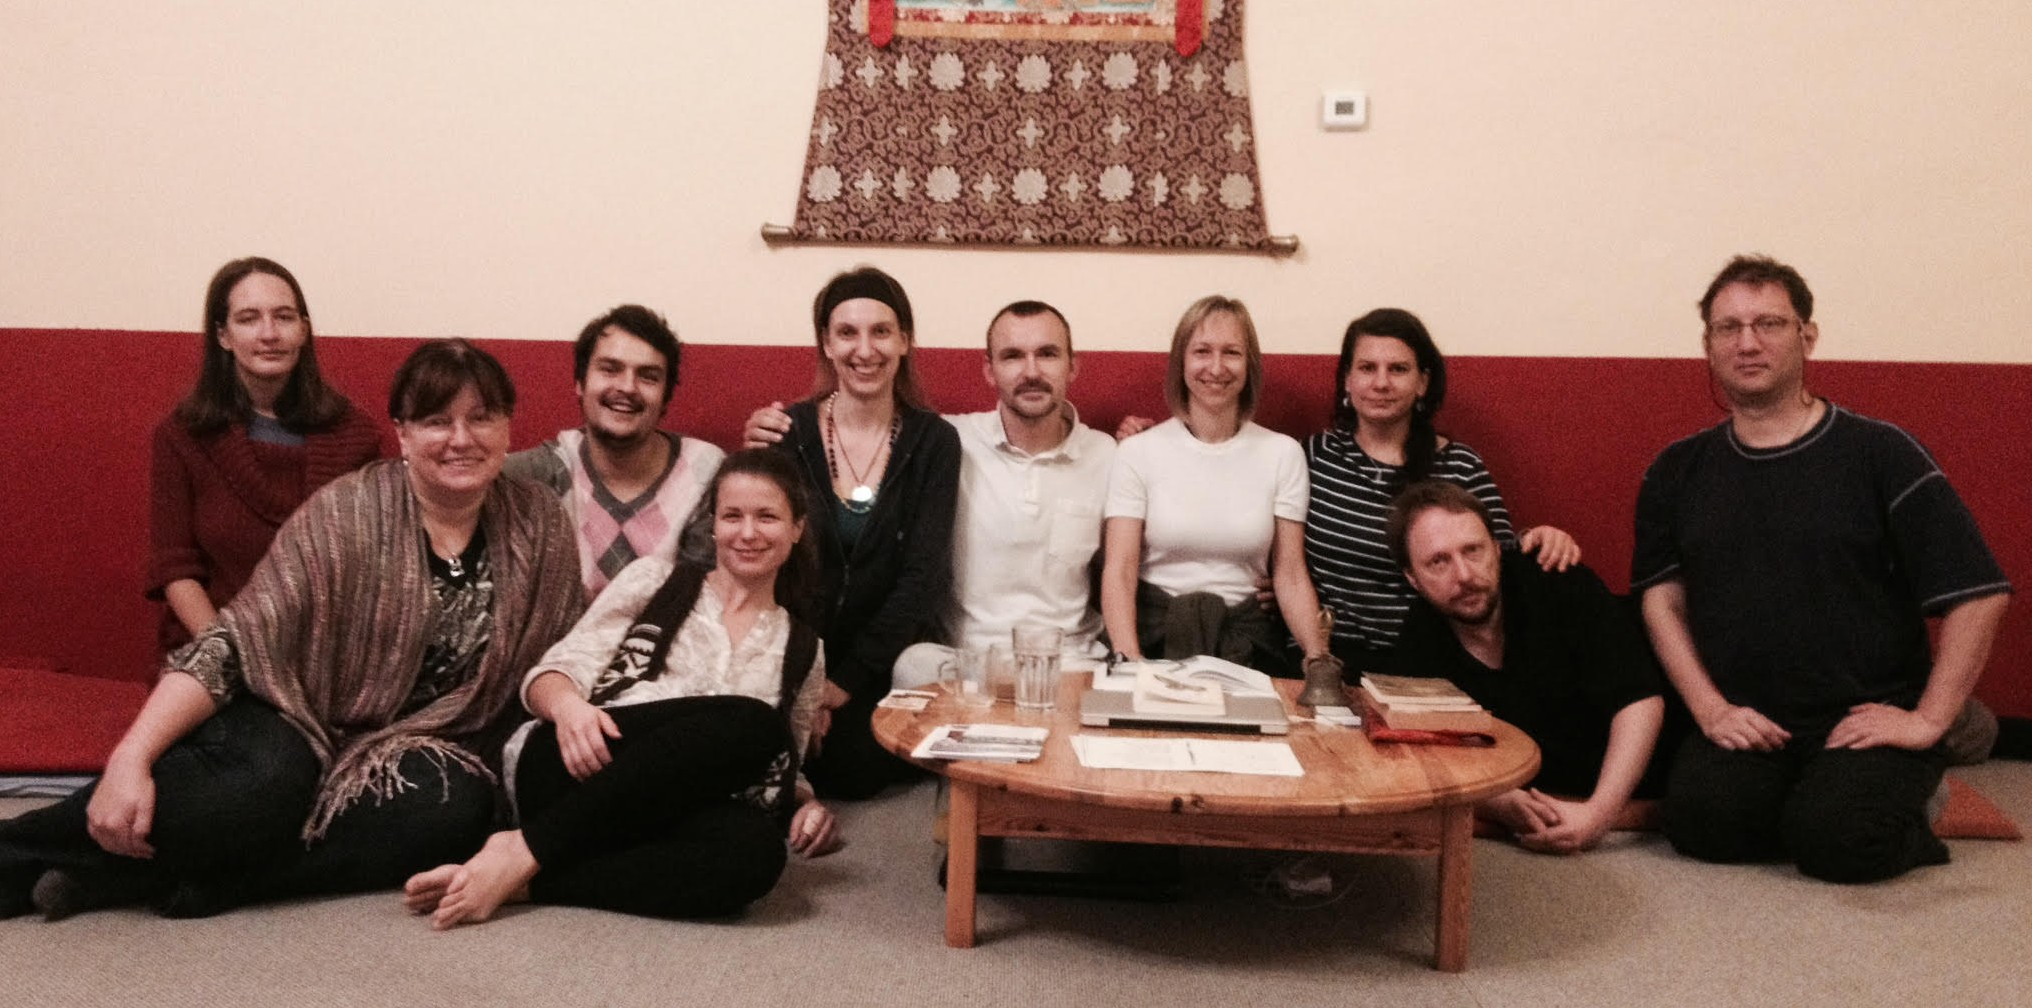 A Course  of The Relative Bodhicitta with Lukas Chmelik  that was held in Phendeling November 11-13, 2015